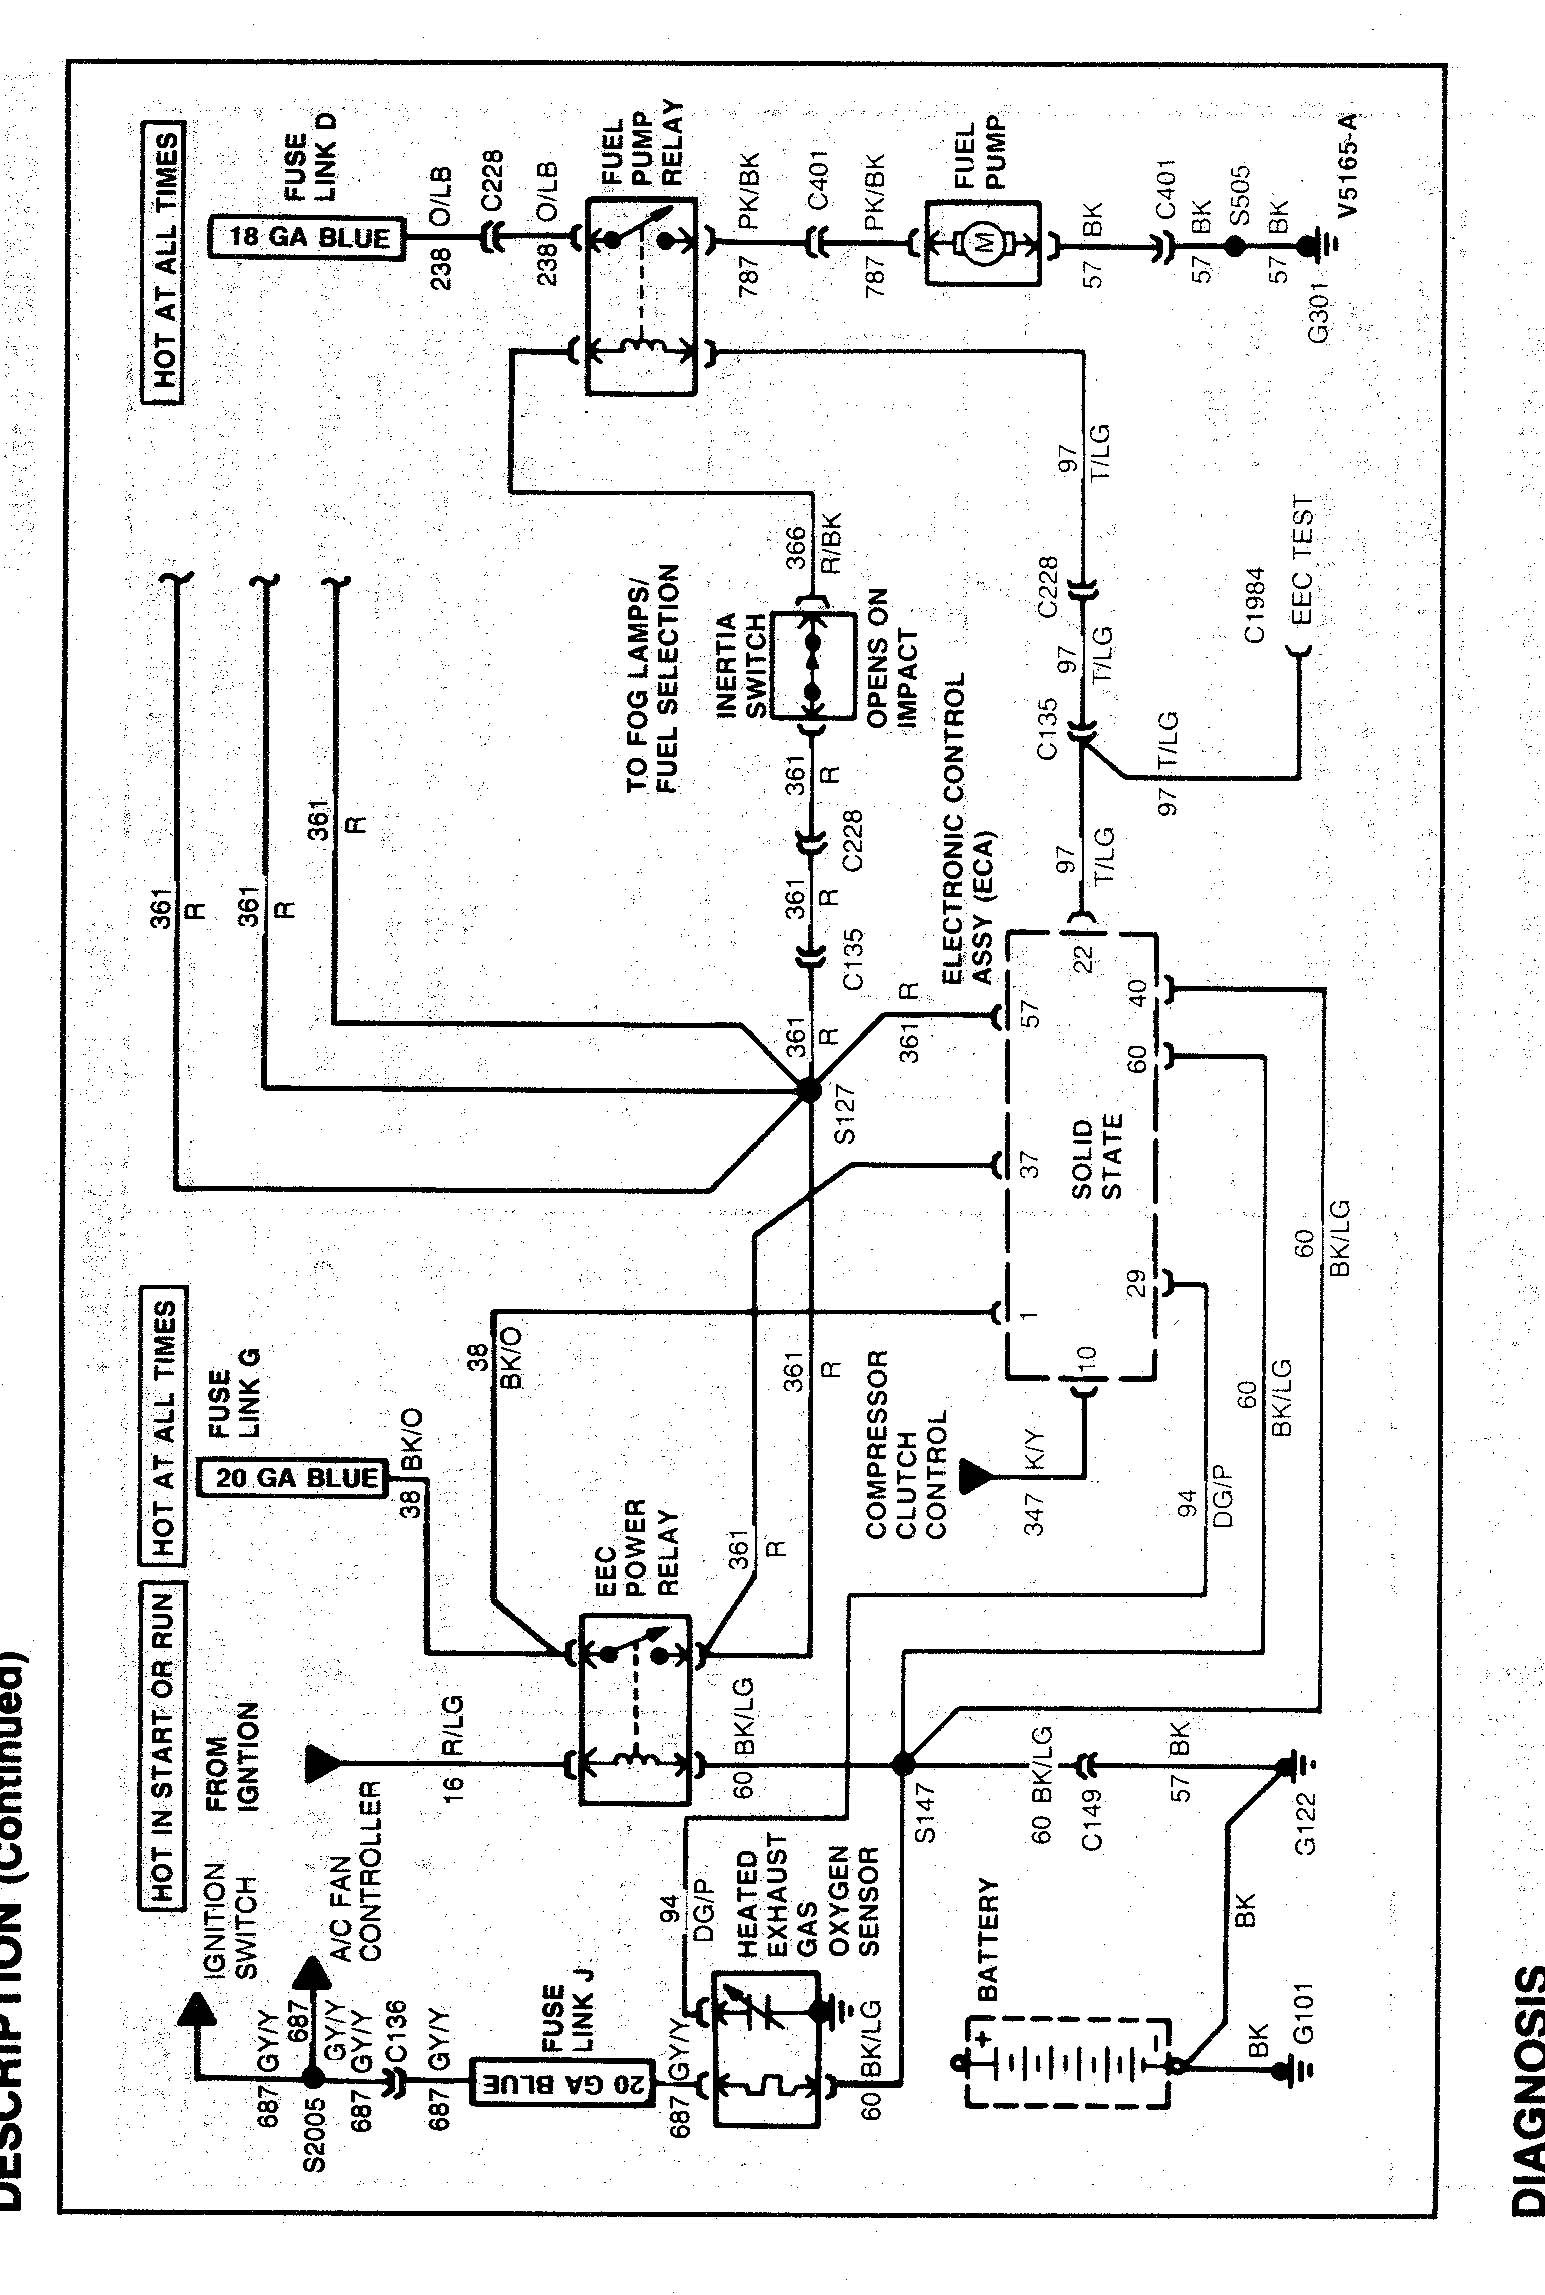 1928d1051592166 may electrical fuel pump but mustangfuelelectricaldiagram2 eec relay wire mustangforums com ford inertia switch wiring diagram at bakdesigns.co